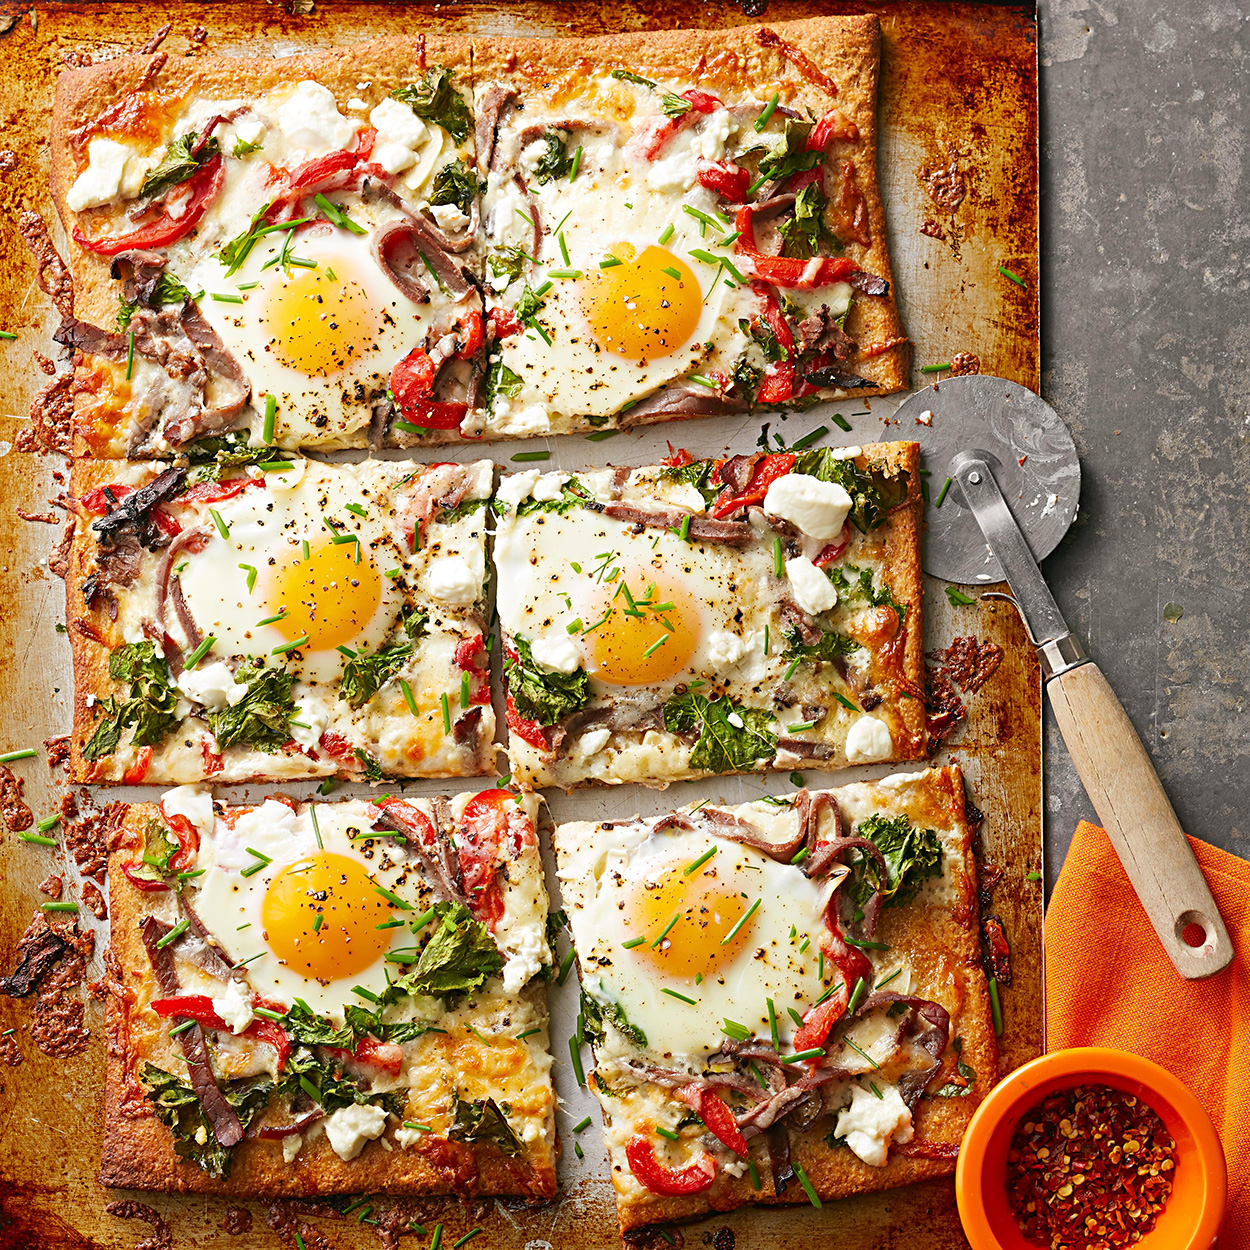 Steak, Egg, and Goat Cheese Pizza